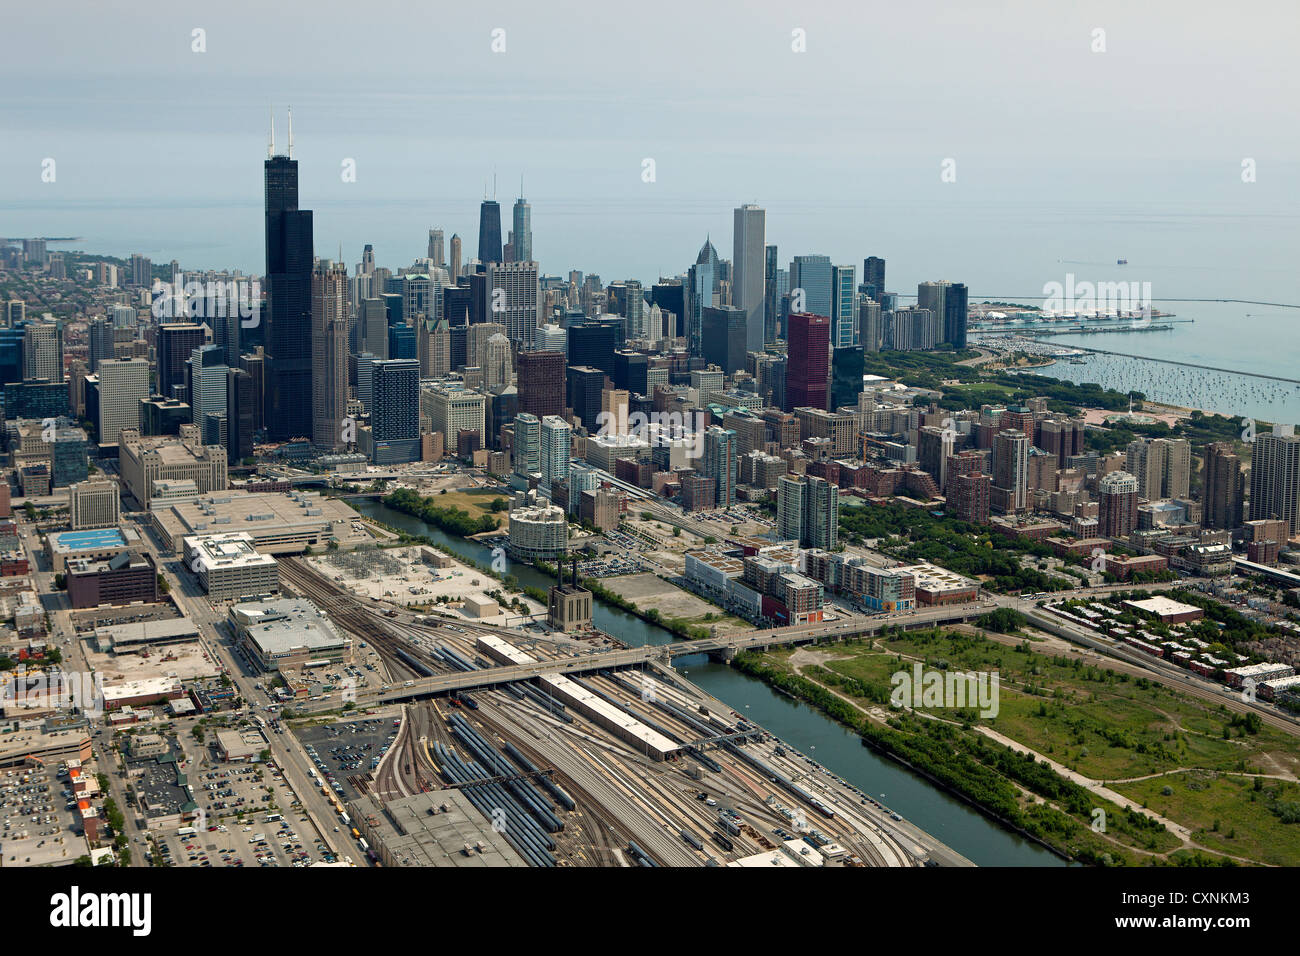 aerial photograph Chicago, Illinois - Stock Image